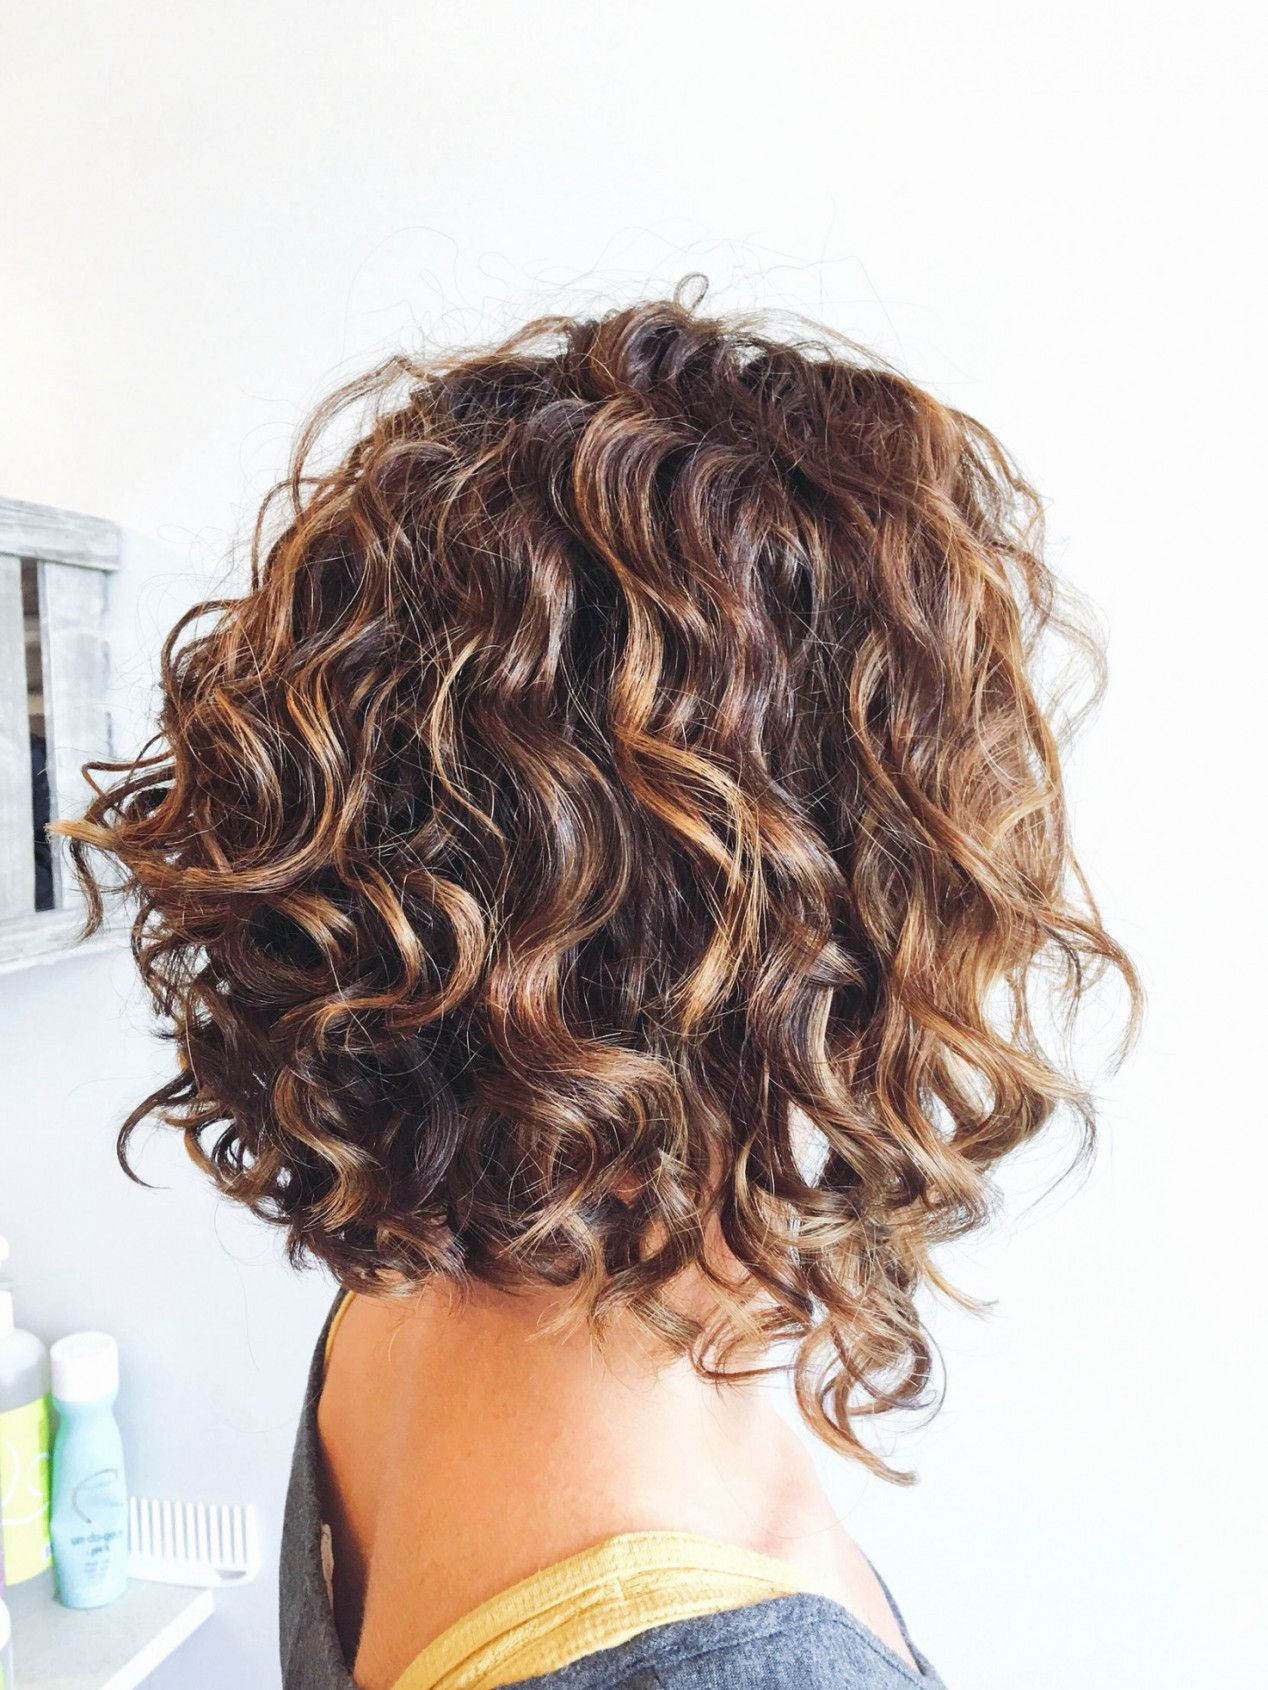 17 Most Delightful Curly Hair Styles Curly Hair Styles Naturally Curly Bob Hairstyles